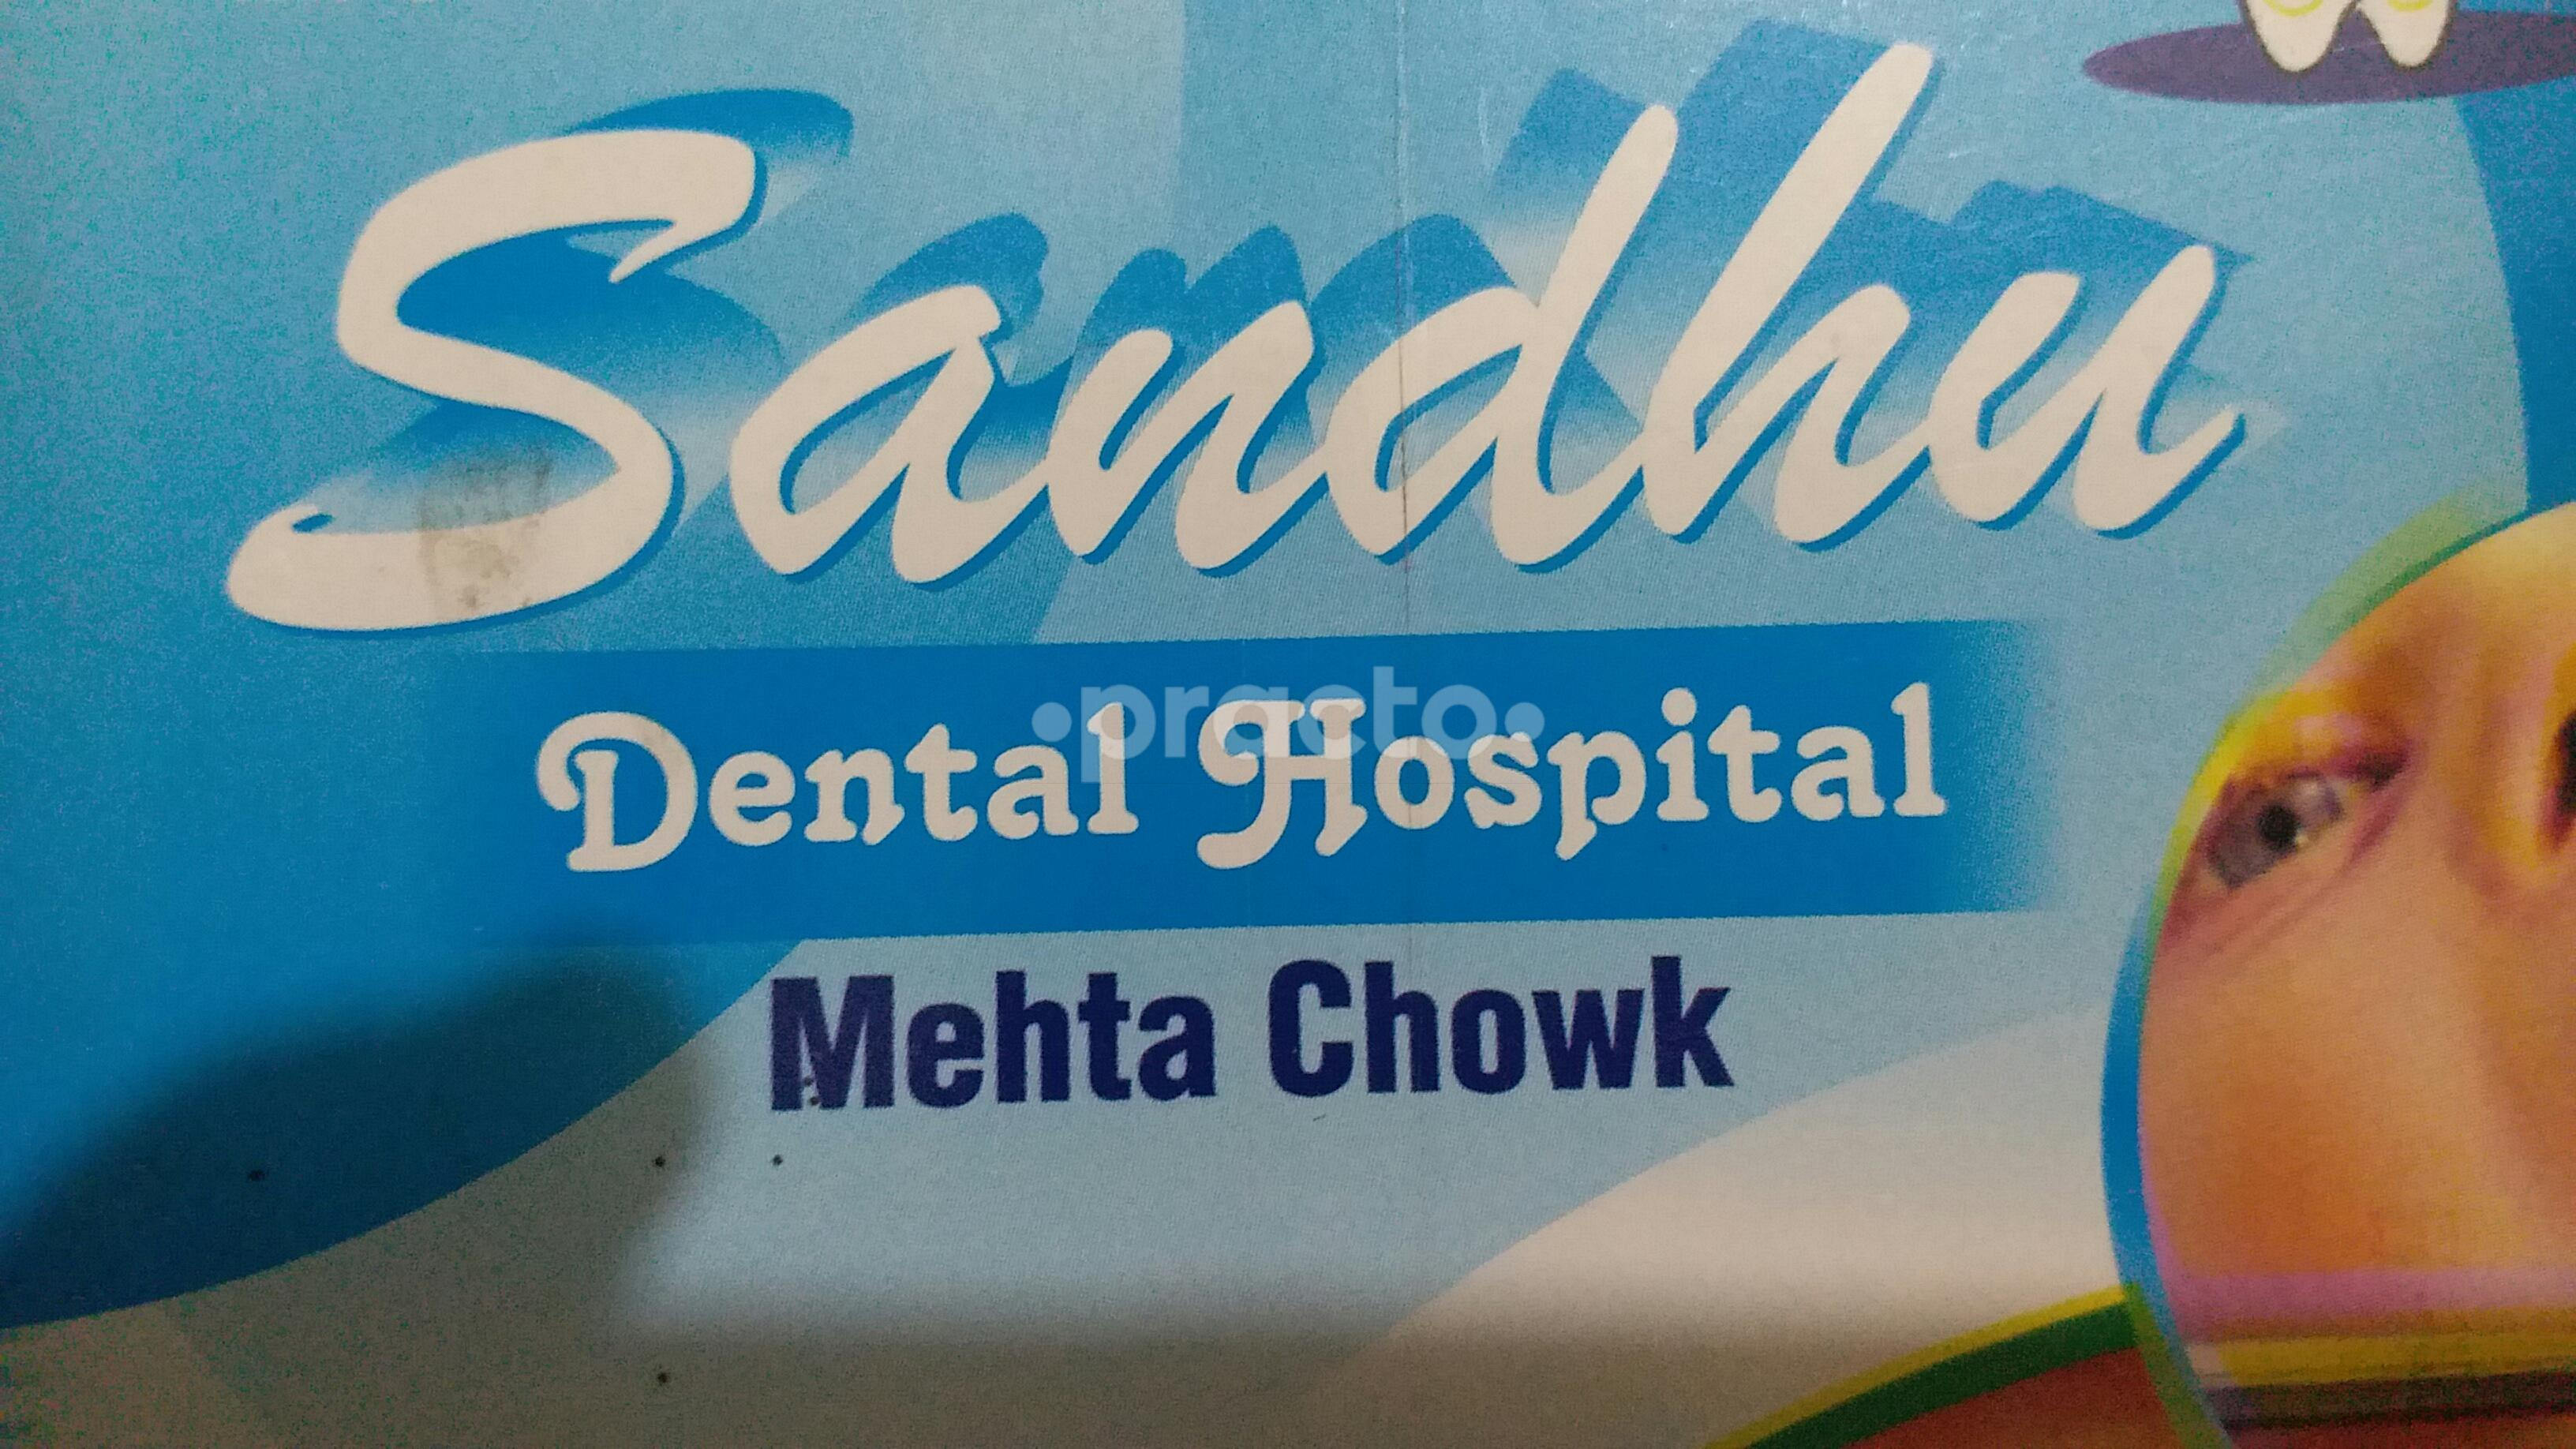 Sandhu Dental Hospital